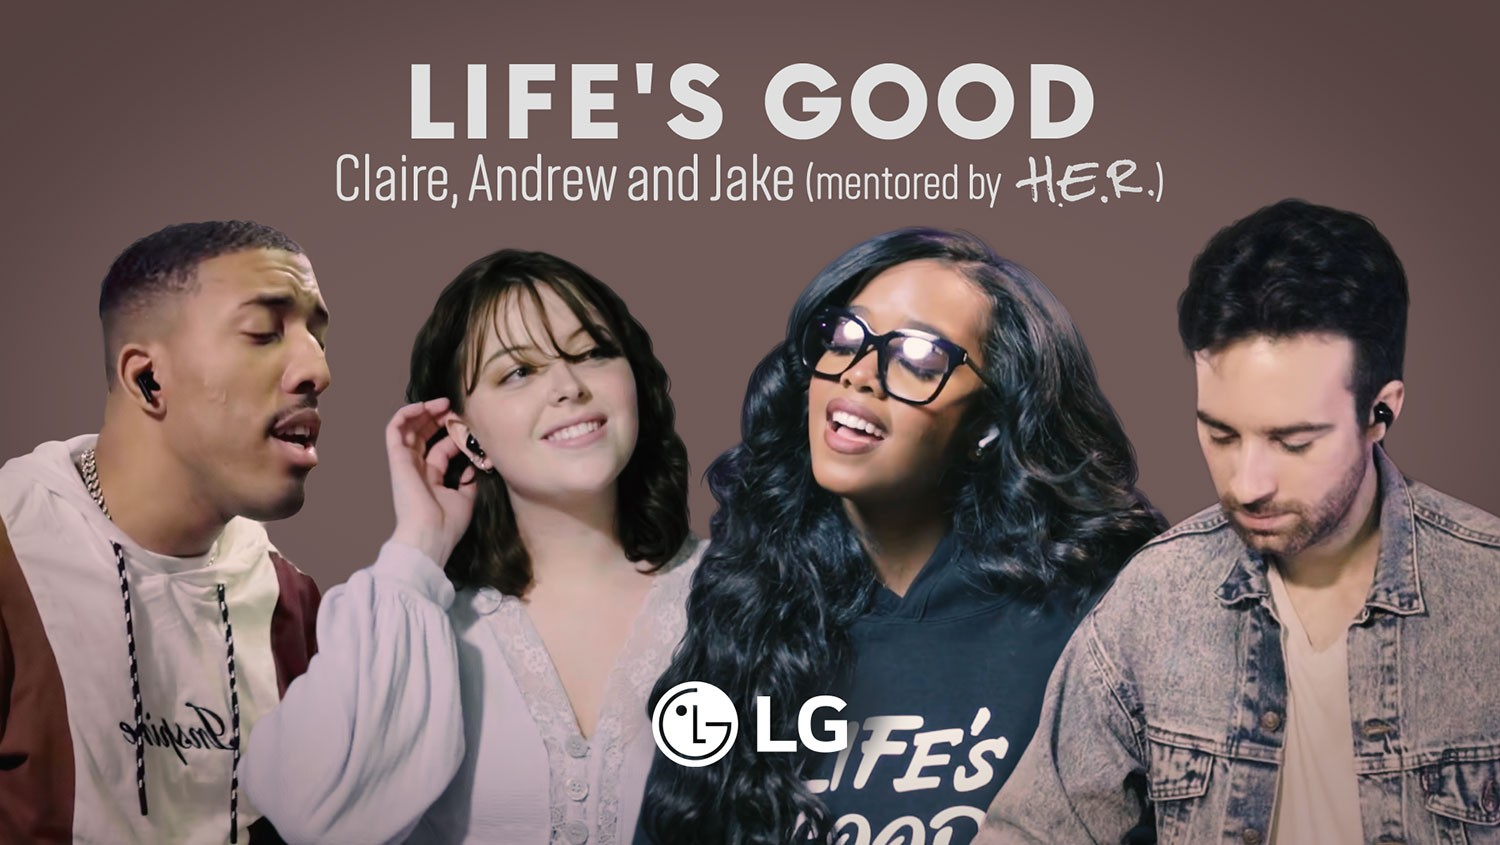 Life's Good Music Project Gives Three Aspiring Musicians the Opportunity of a Lifetime